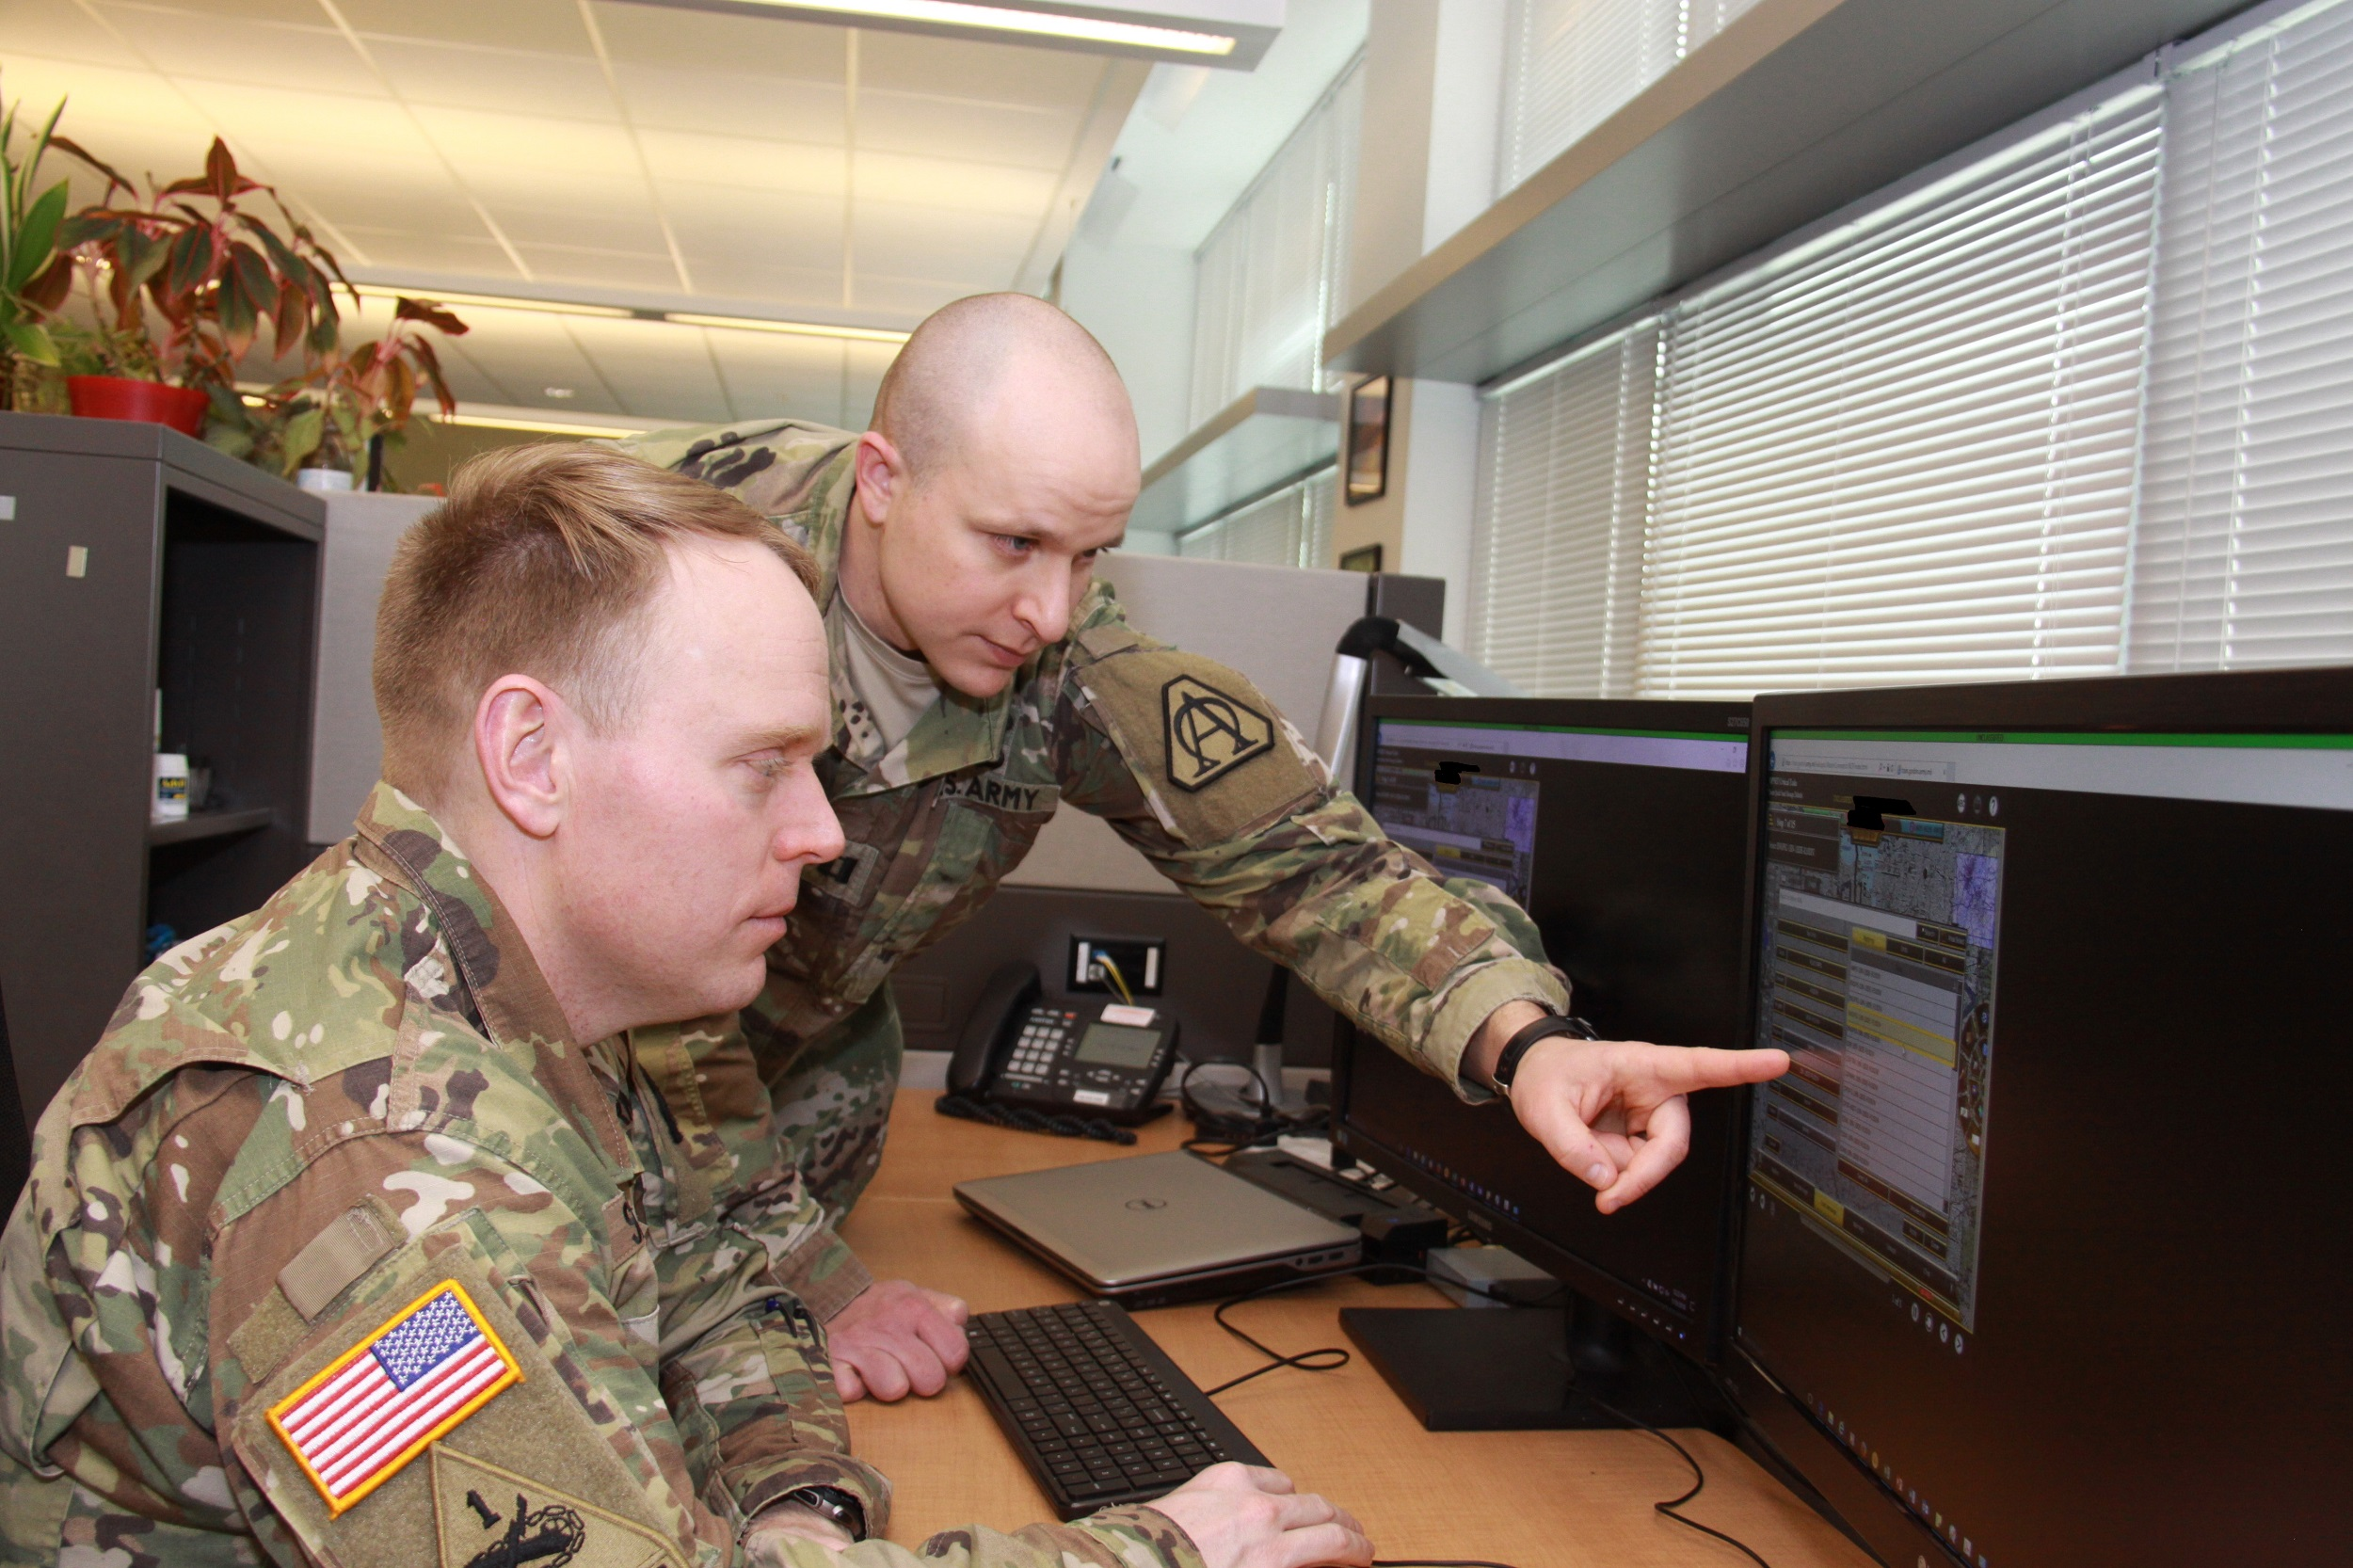 Capt. Doug Williams (standing) and Capt. Jake Singleton review the Joint Battle Command-Platform's new interactive multimedia instruction software at Aberdeen Proving Ground, Maryland, on Jan. 10, 2018. The IMI software will allow Soldiers to train on JBC-P from a CD, the Army's online training tool LandWarNet, or embedded on vehicle hardware known as Mounted Family of Computing Systems. (Photo Credit: Dan Lafontaine, PEO C3T Public Affairs)